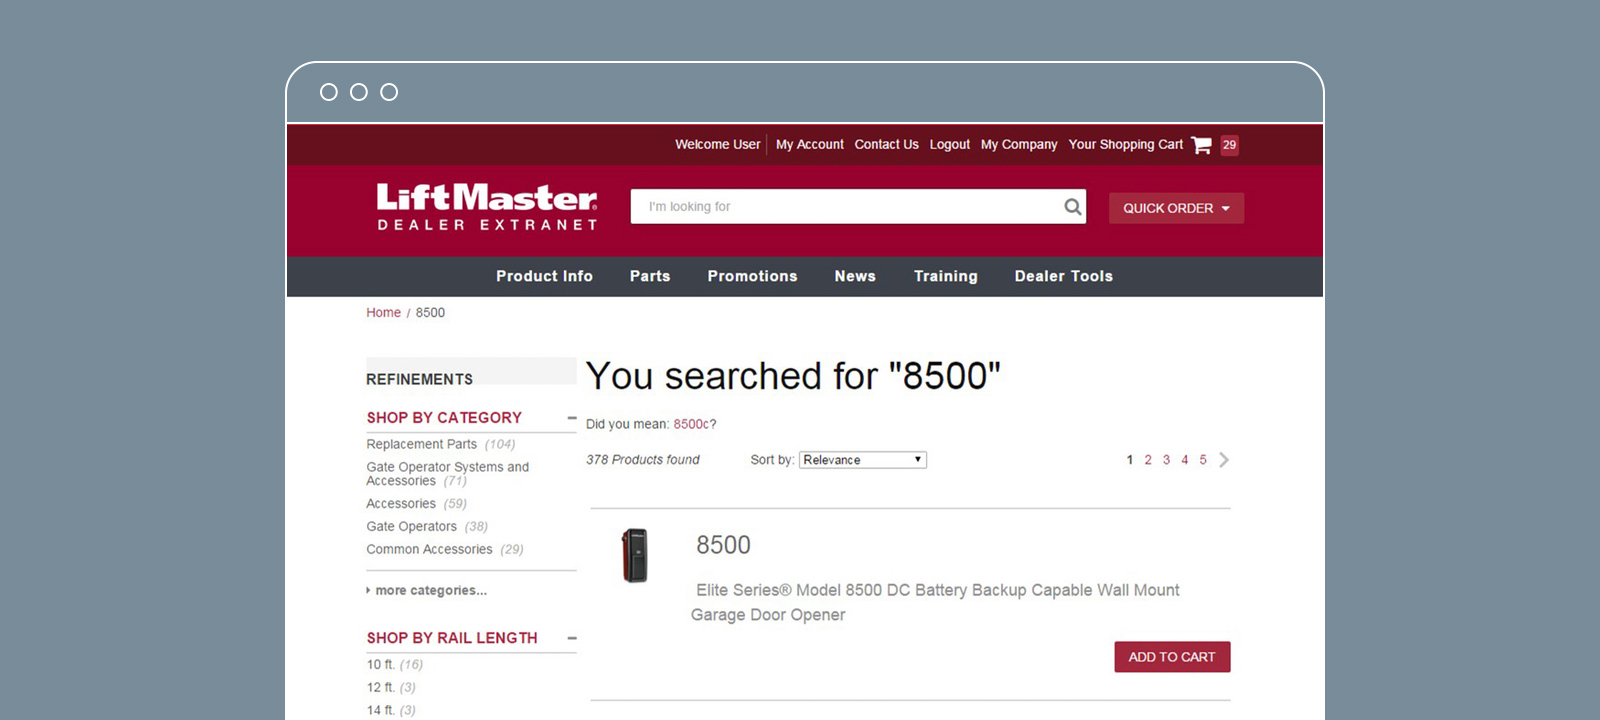 Dealer Portal Search Results